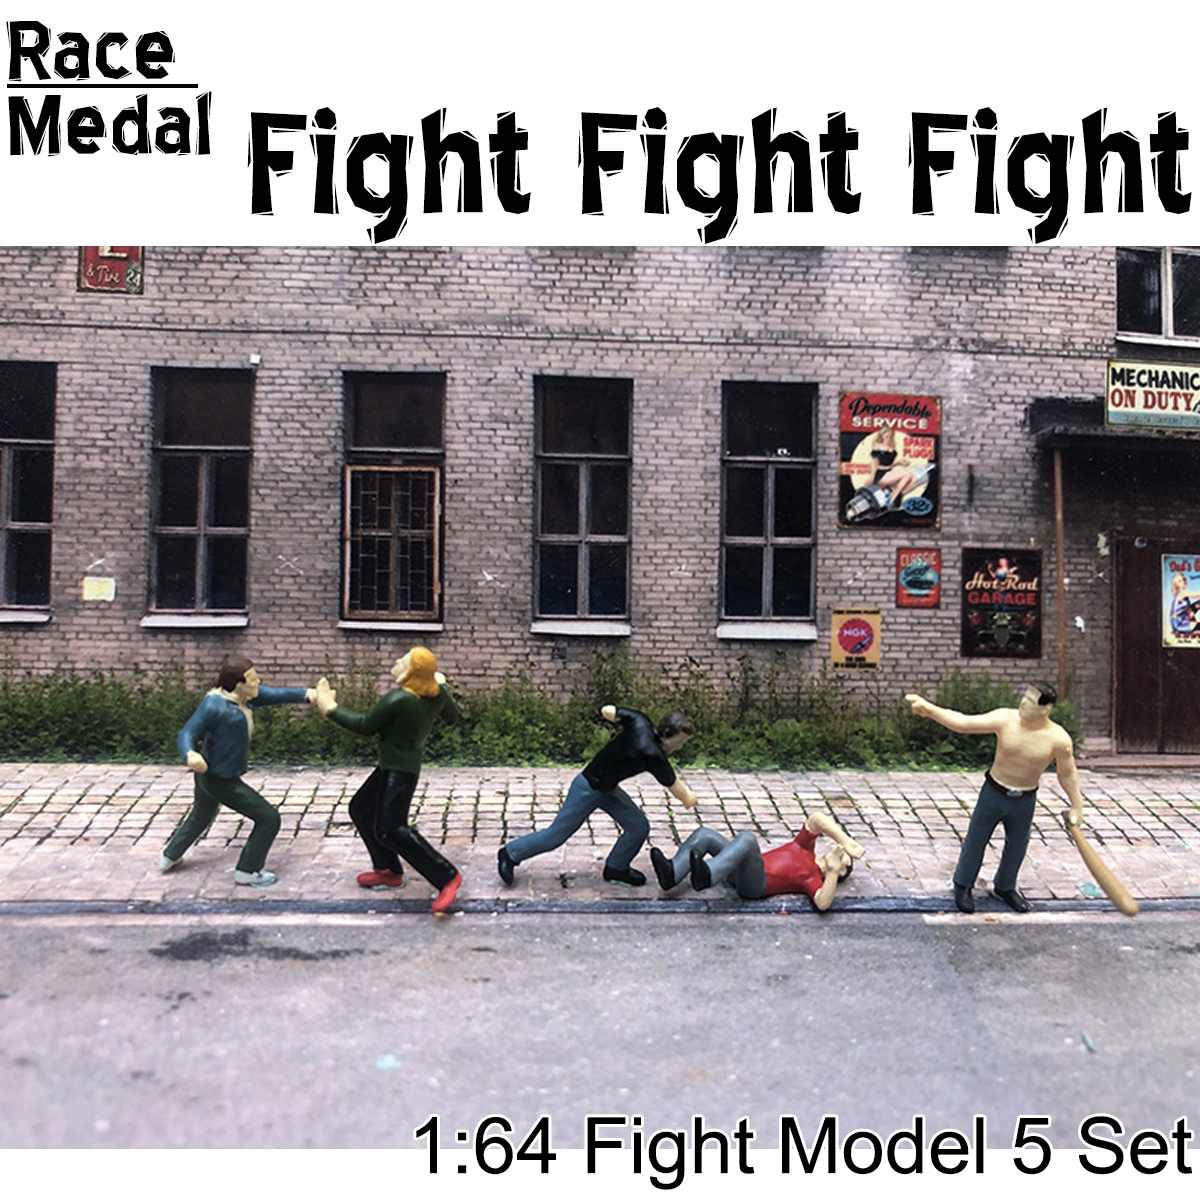 1:64 Scale Outdoor Attack Group Fights Man Tactical Baseball Figure People Scenario Model Scene For Race Medal Matchbox